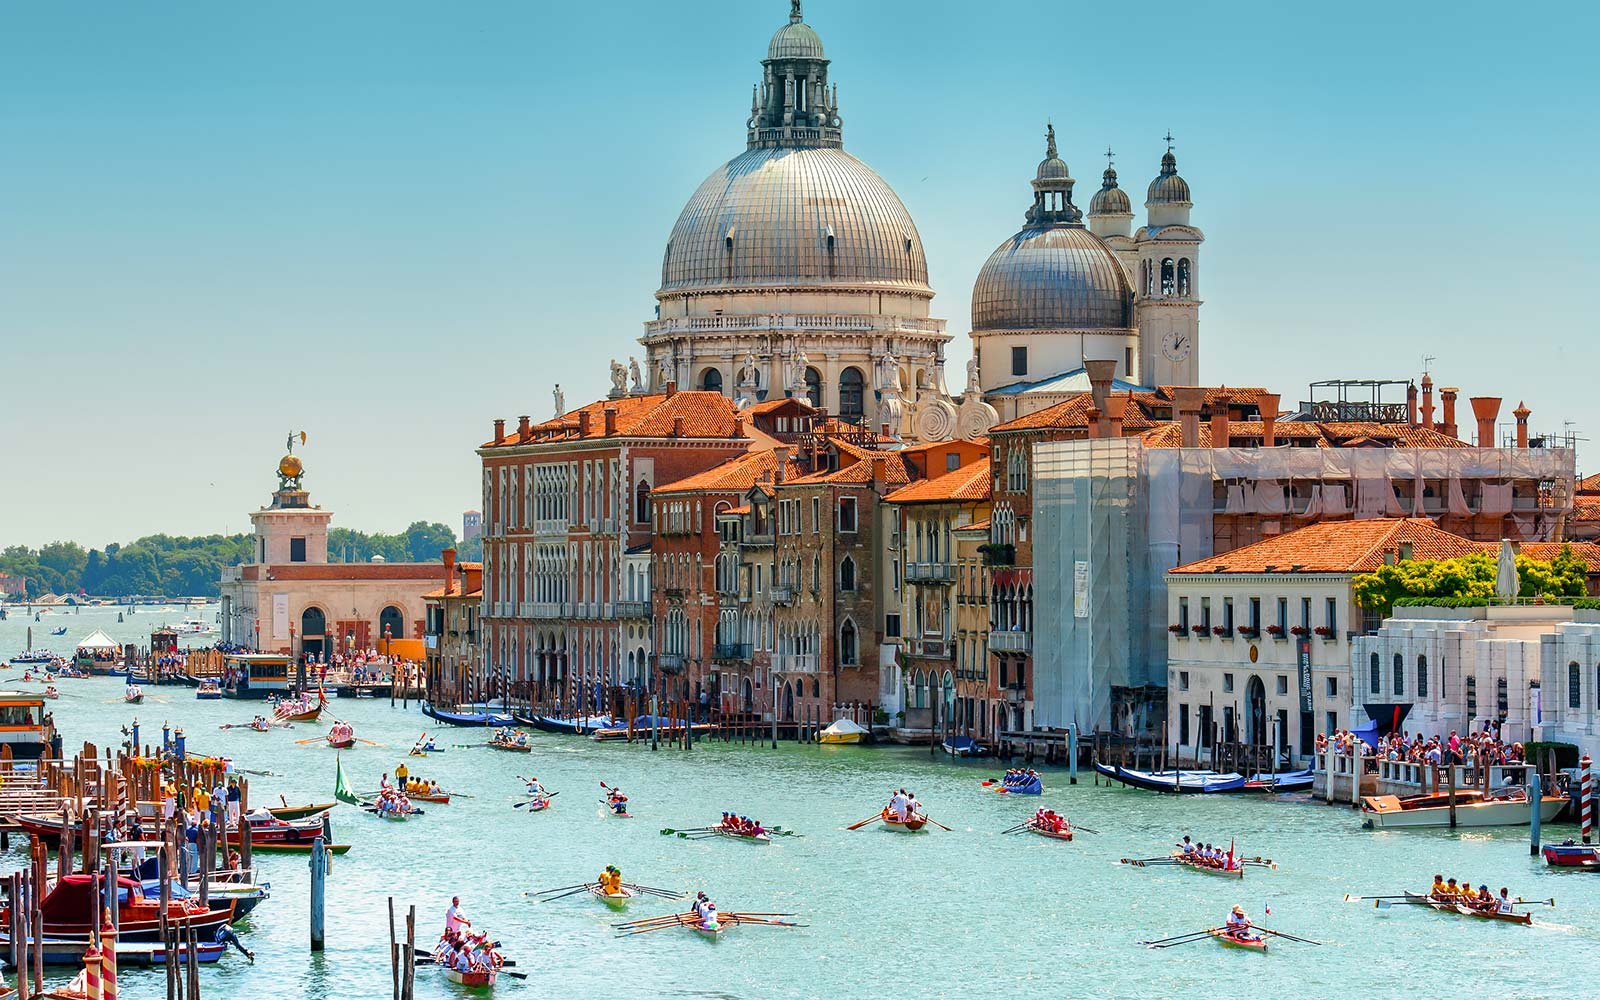 Flights to Italy Are on Sale for $398 Round-trip This Winter